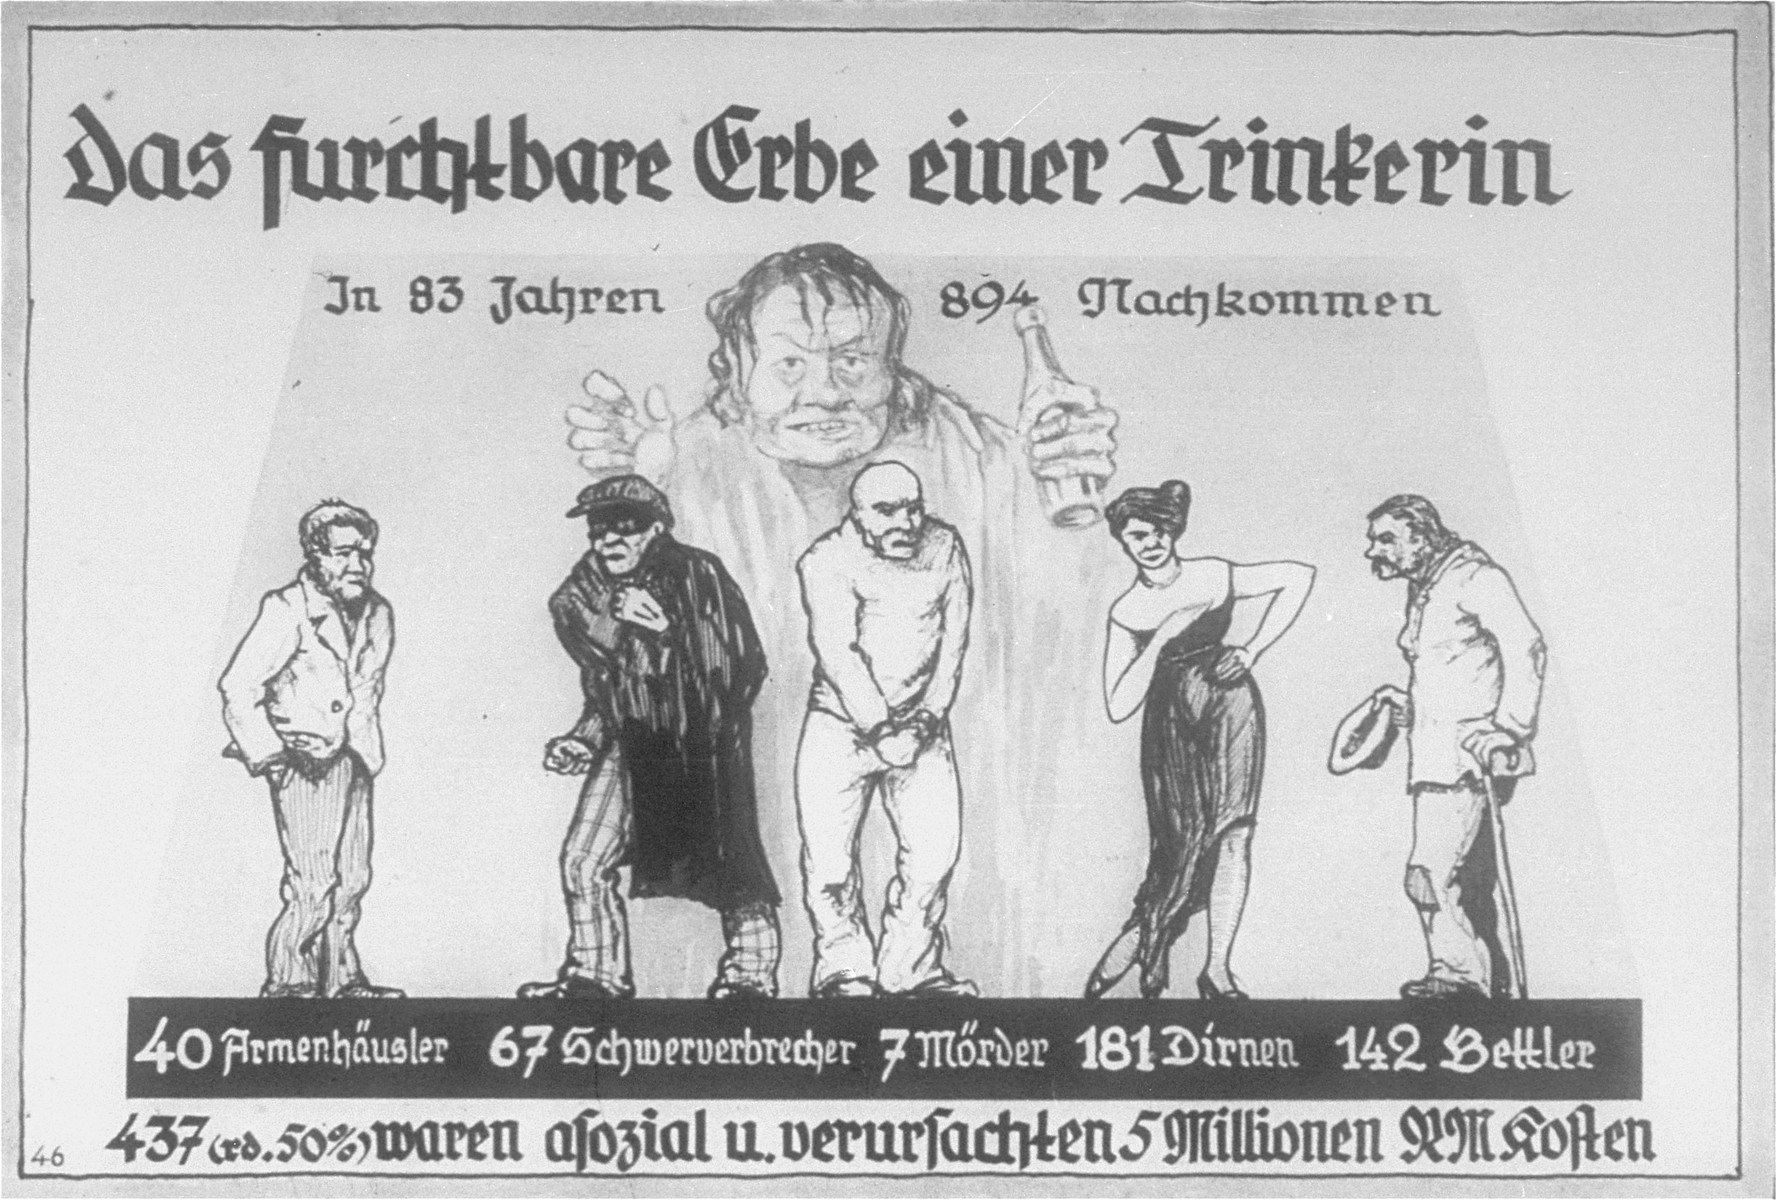 "Propaganda slide produced by the Reich Propaganda Office entitled ""The Fearful Legacy of an Alcoholic.""    According to the chart, an alcoholic will have 894 descendants in 83 years and of these 40 will live in extreme poverty, 67 will be hardened criminals, 7 will be murderers, 181 will turn to prostitution, and 142 will be beggars.  Altogether, these ""asocials"" and their activities will cost 5 million RM."